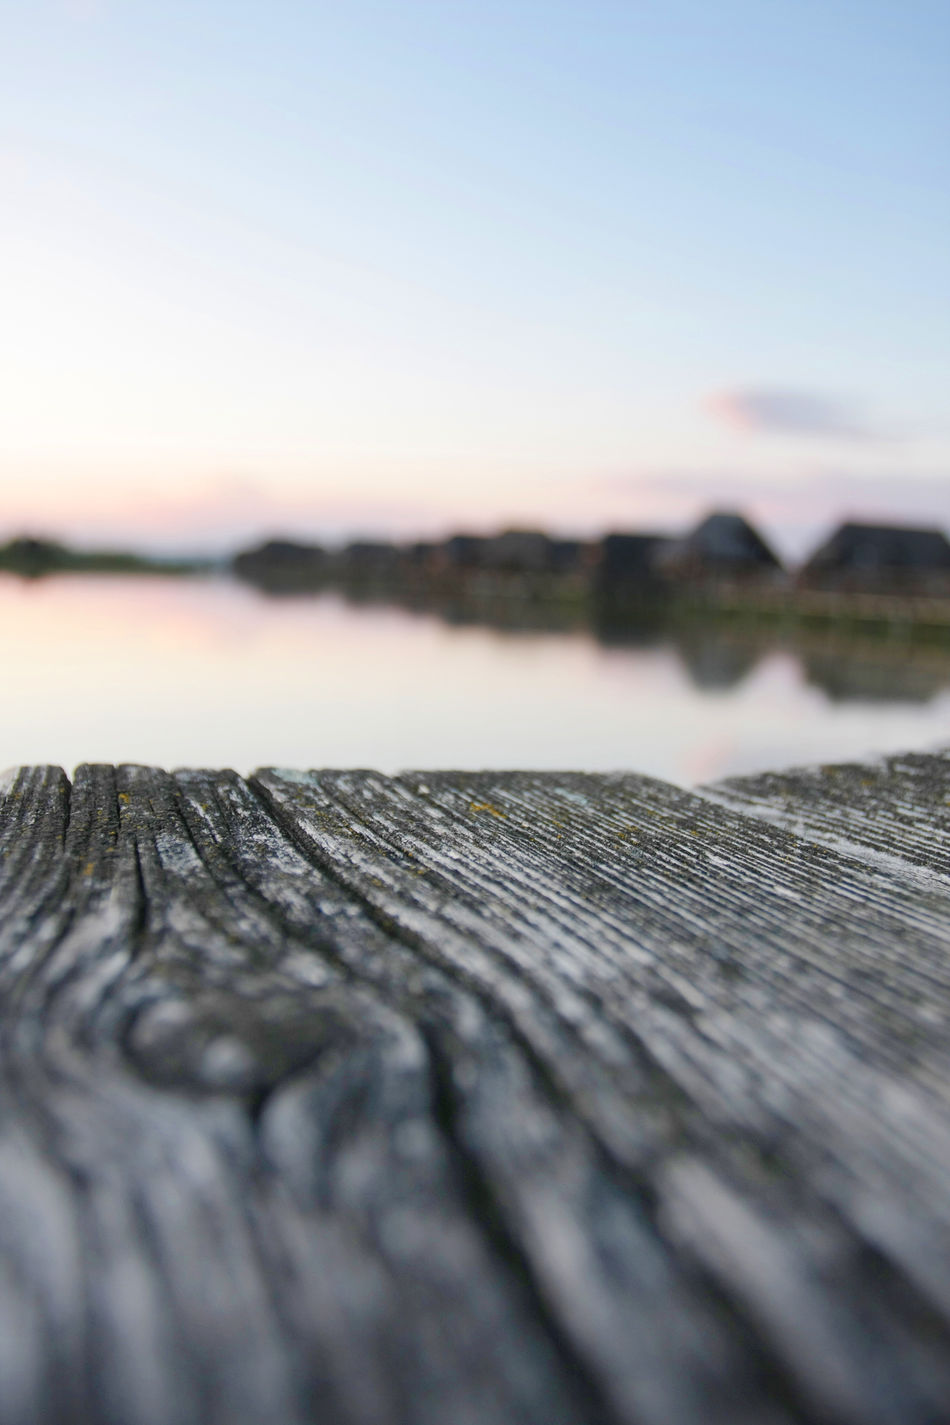 Beauty In Nature Blue Boardwalk Building Close-up Day Focus On Foreground Idyllic Landscape Nature No People Outdoors Scenics Selective Focus Sky Surface Level Tranquil Scene Tranquility Wood Wood - Material Wooden